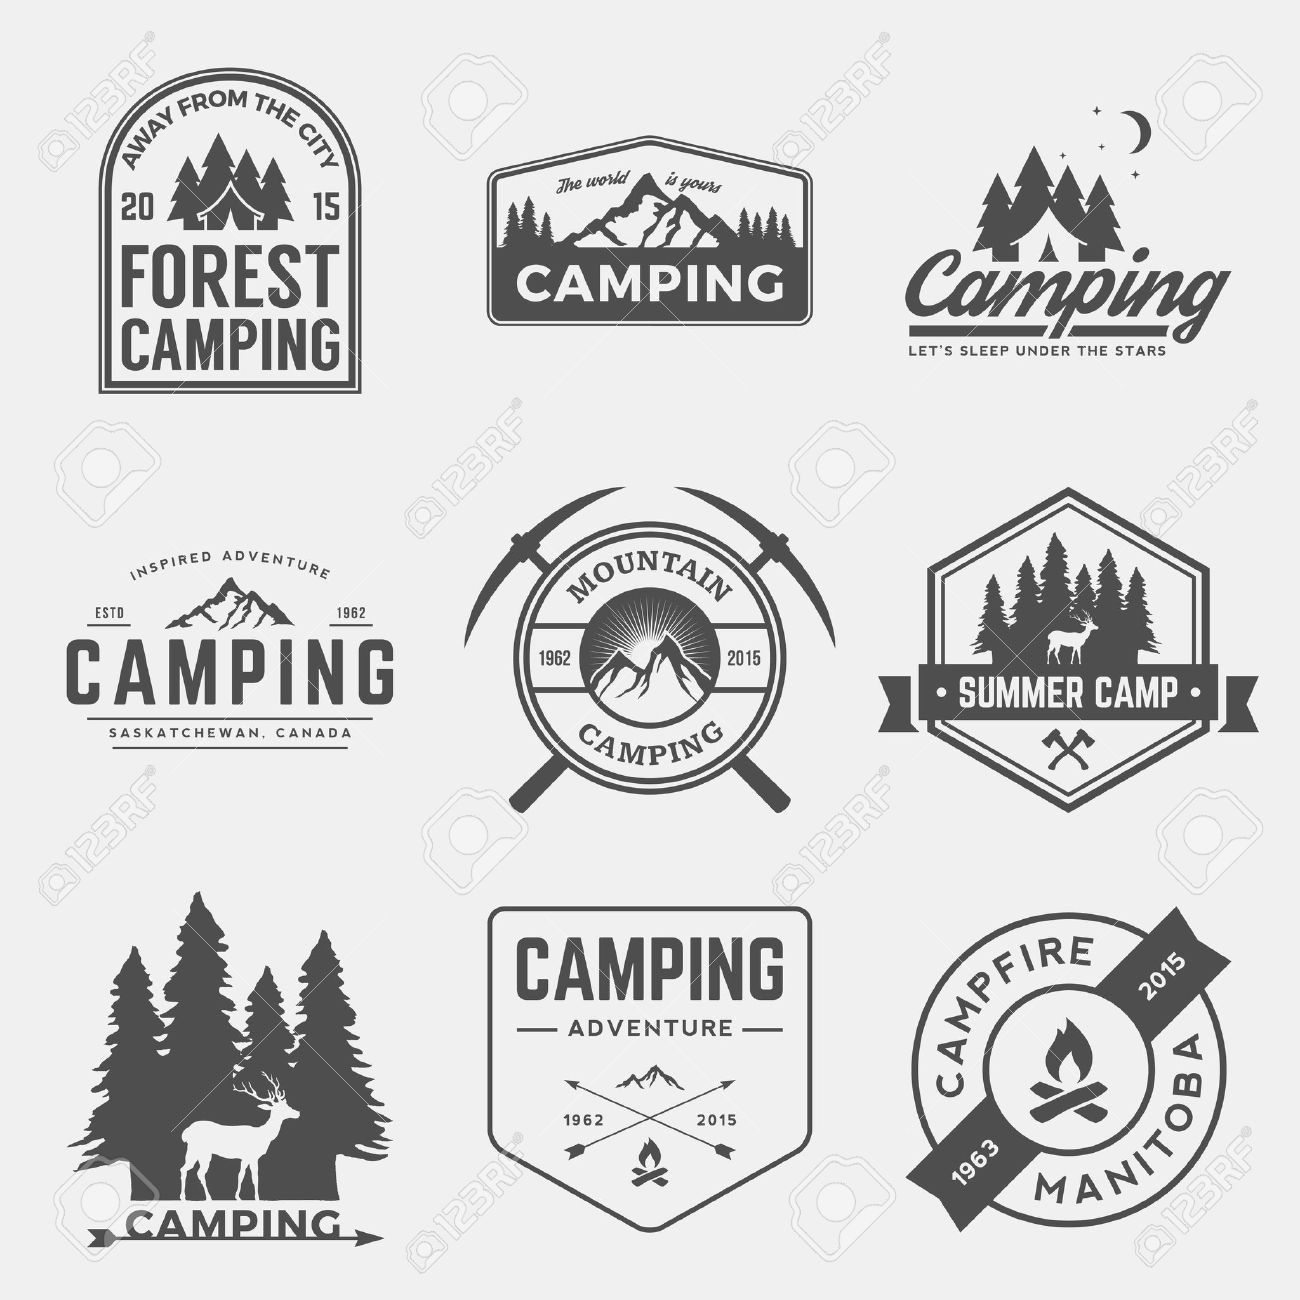 vector set of camping and outdoor adventure vintage logos, emblems, silhouettes and design elements - 42861382